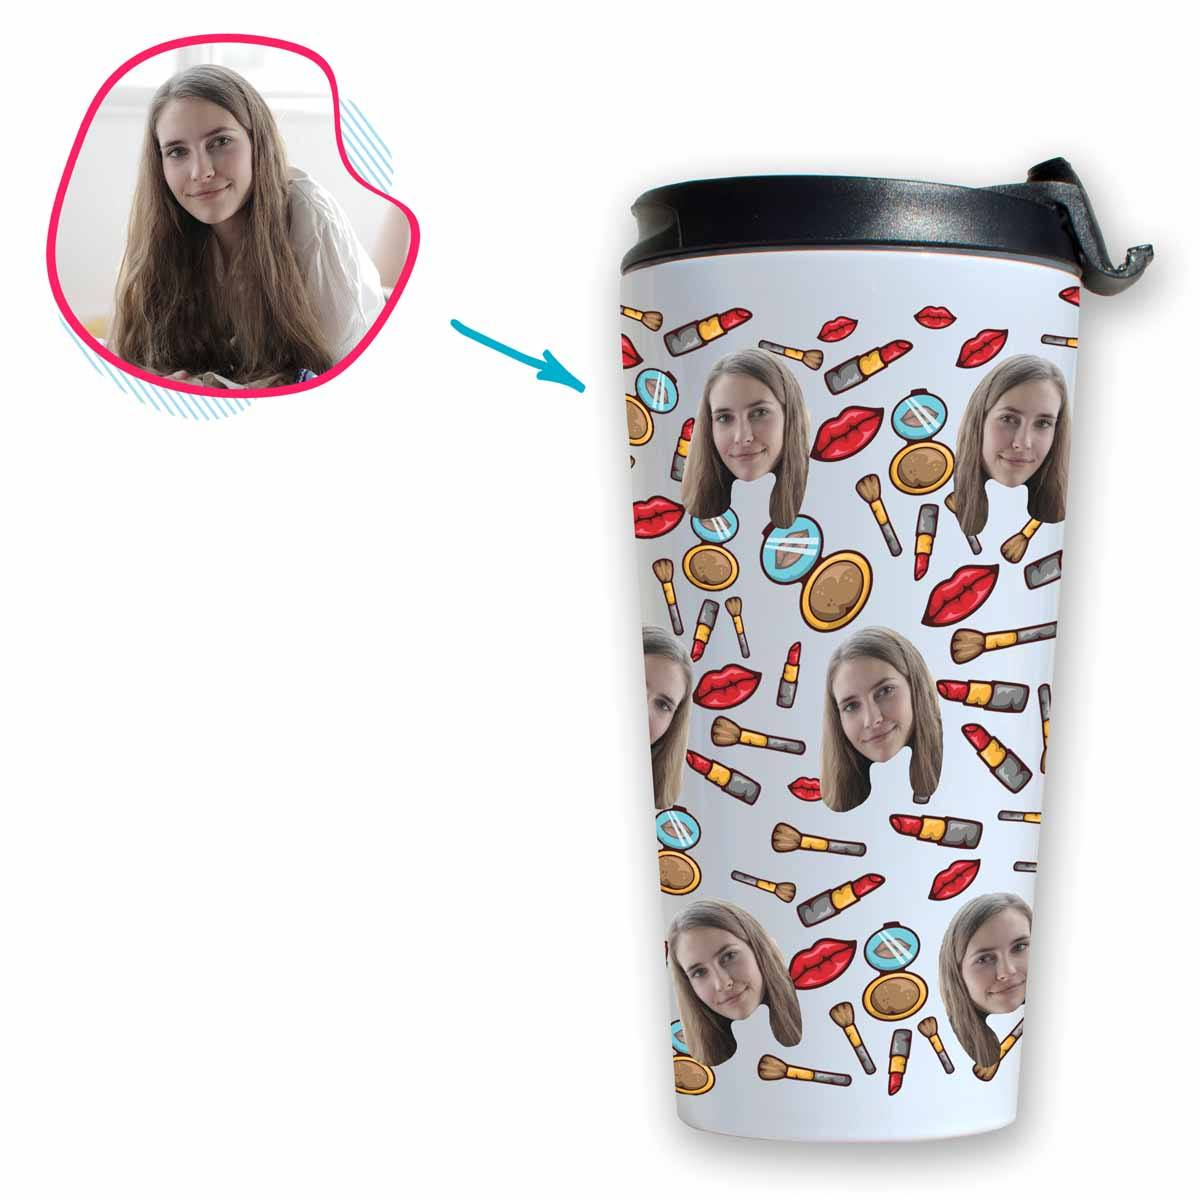 White Makeup personalized travel mug with photo of face printed on it